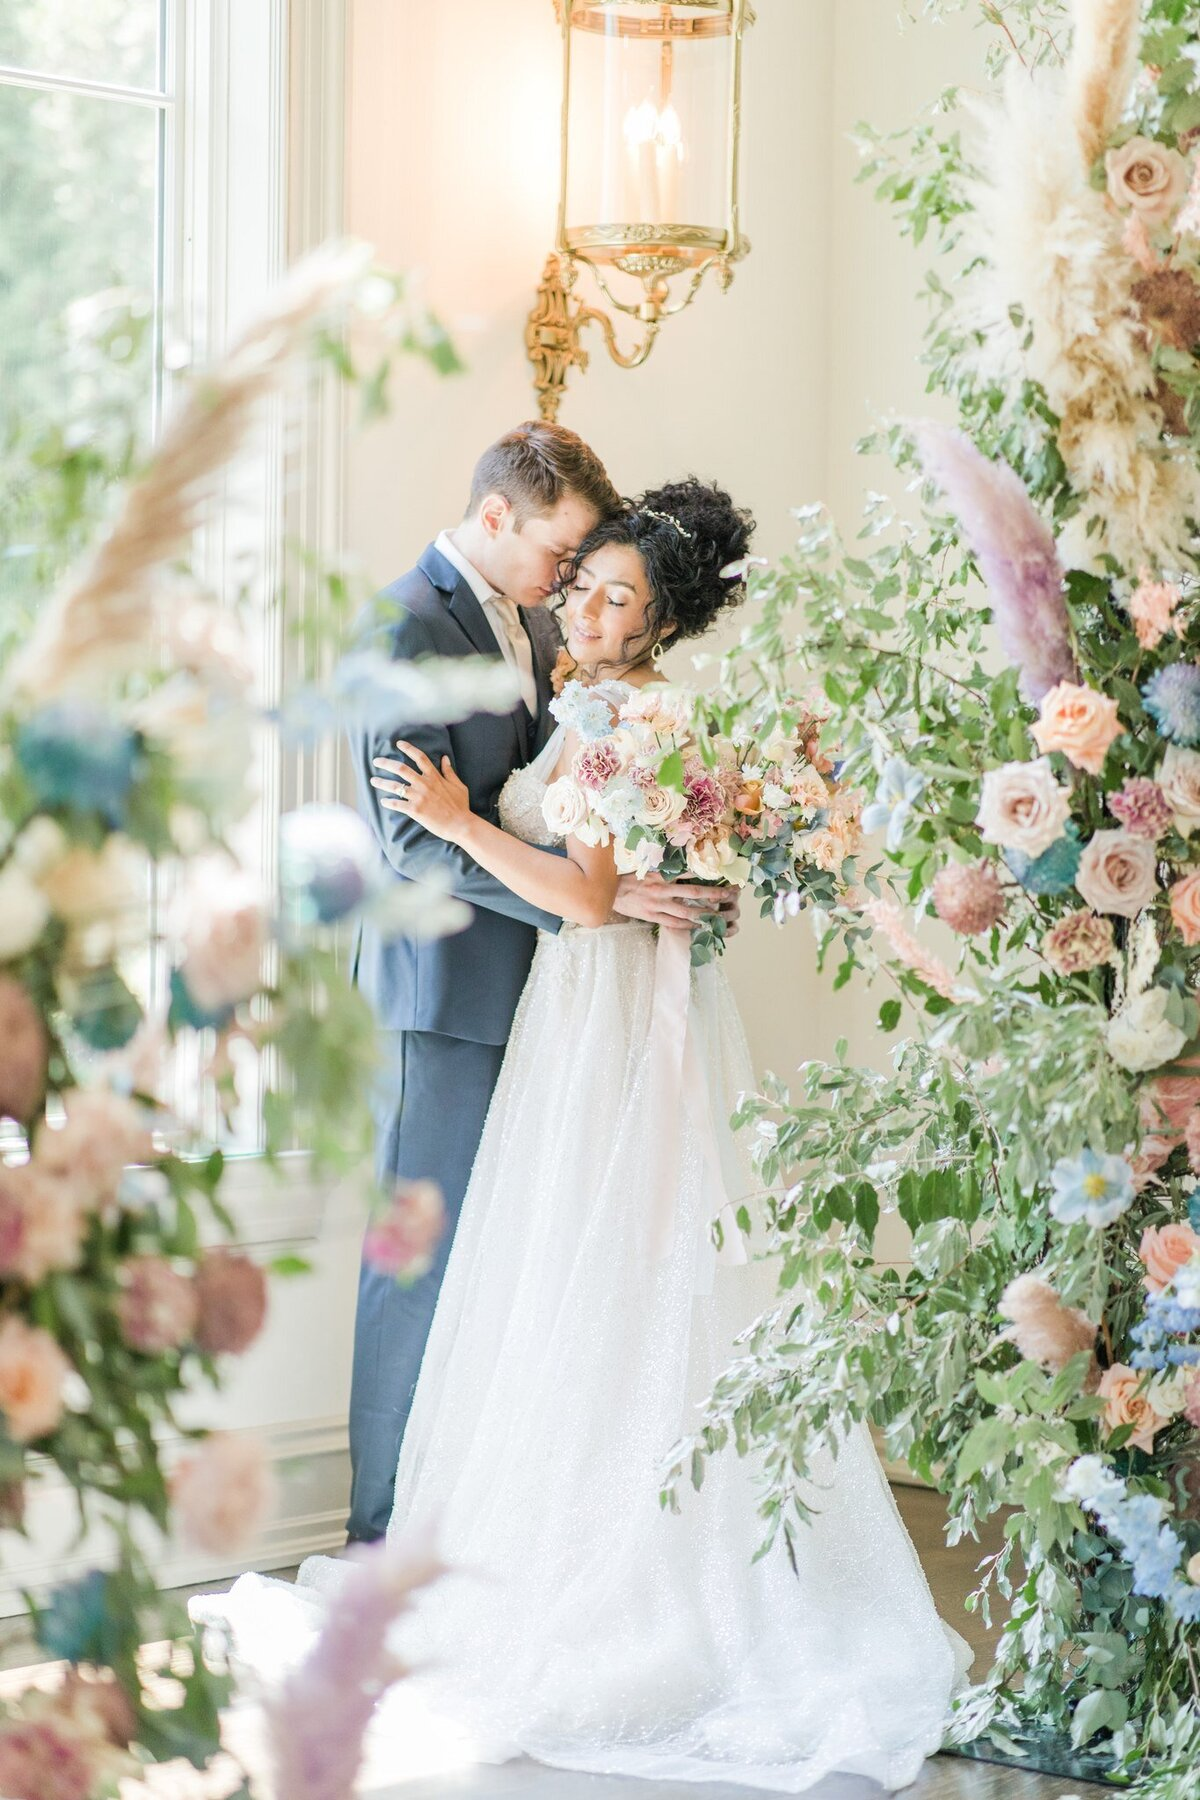 Pastel__Inspired_Wedding_in_the_Chapel_at_the_Park_Chateau_Estate_and_Gardens_in_East_Brunswick-100